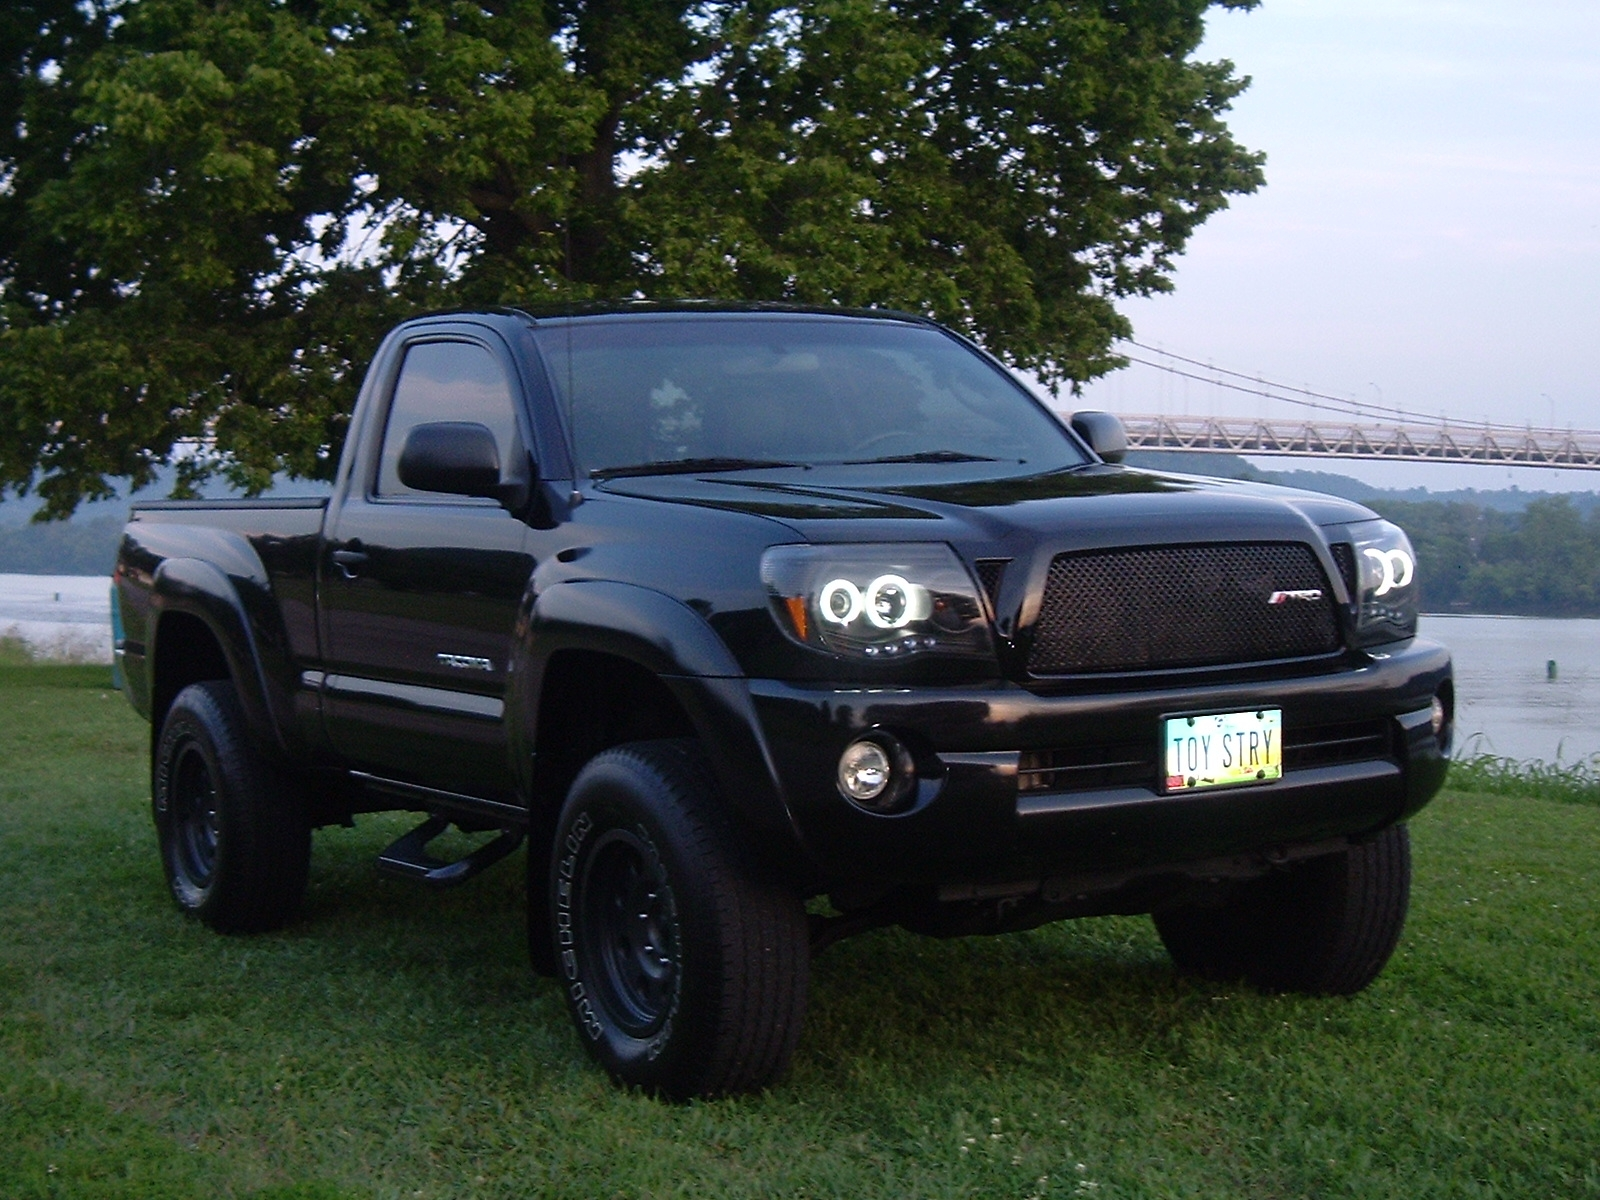 thoover43 2005 toyota tacoma xtra cab specs photos modification info at cardomain. Black Bedroom Furniture Sets. Home Design Ideas